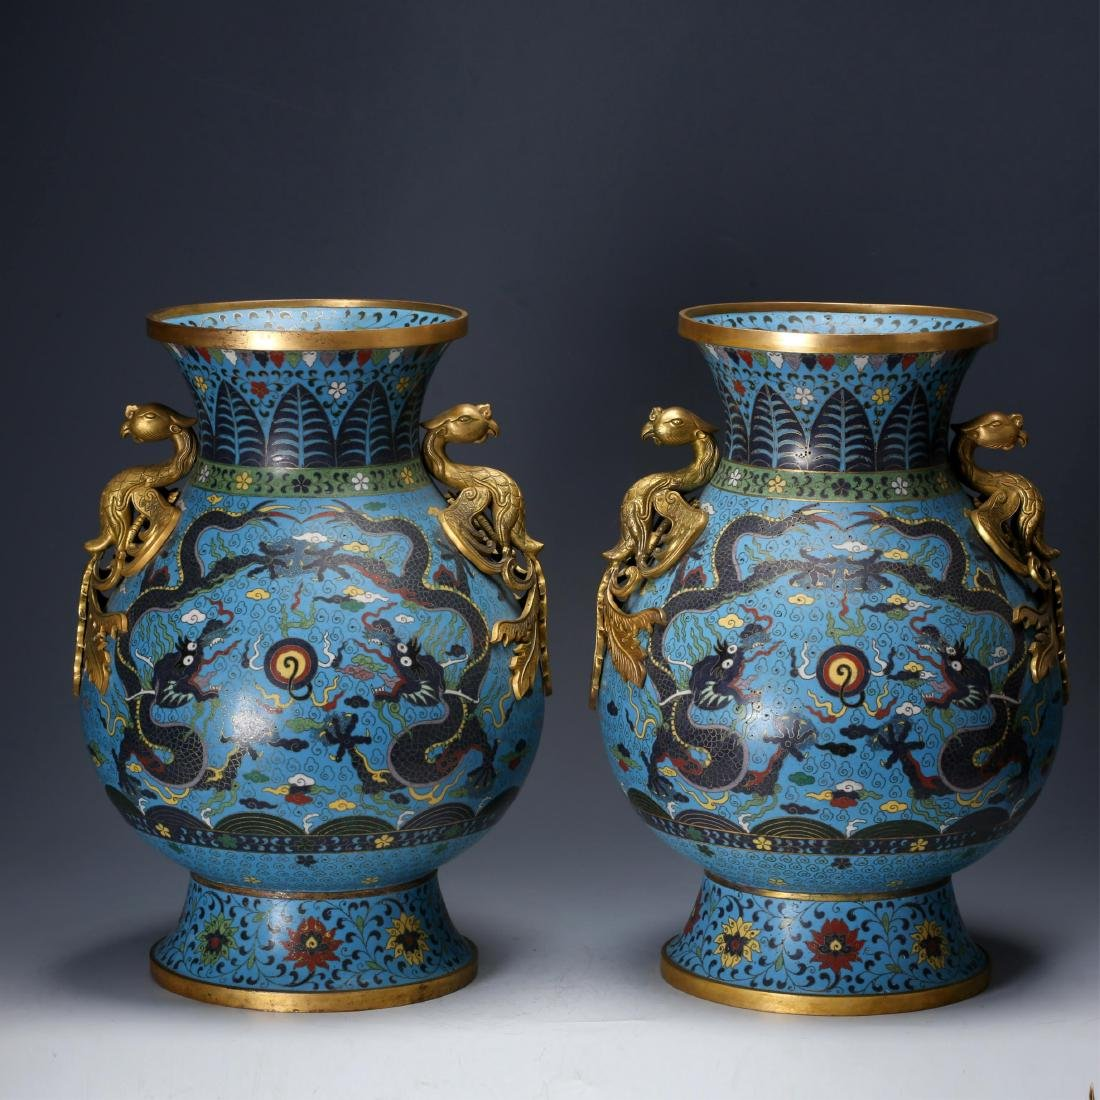 PAIR OF CHINESE CLOISONNE VASE WITH CHILONG HANDLE